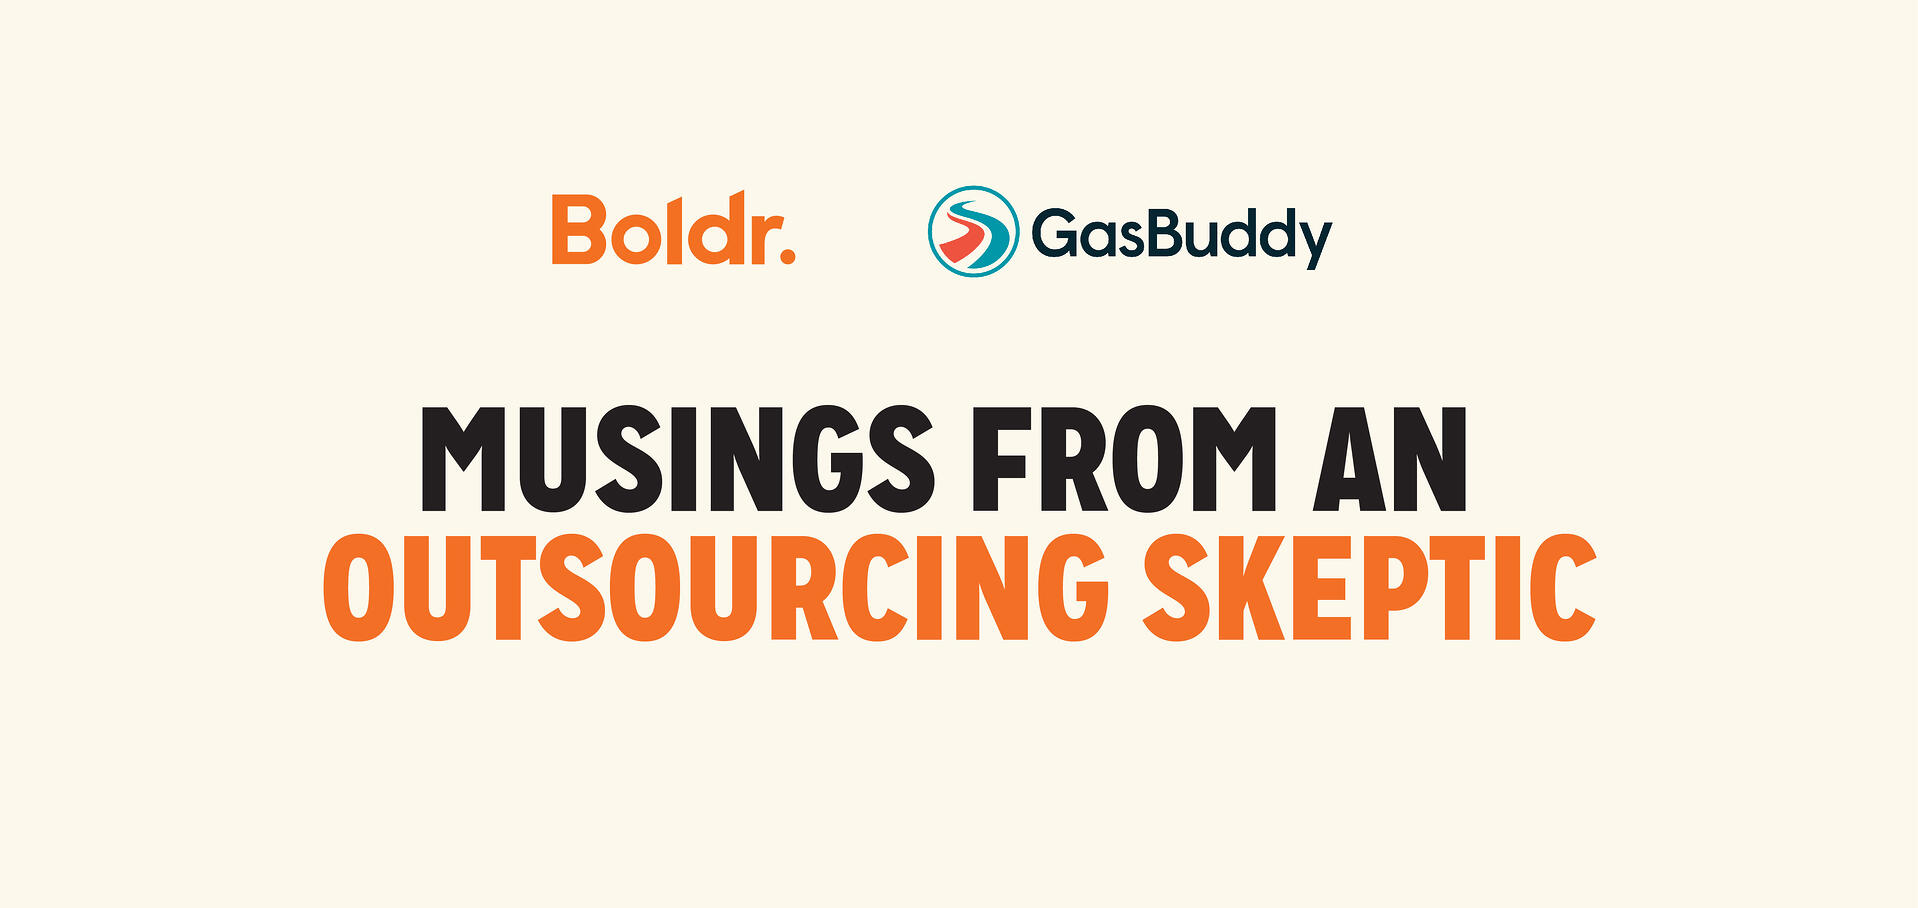 Client Story: GasBuddy—Musings from an Outsourcing Skeptic